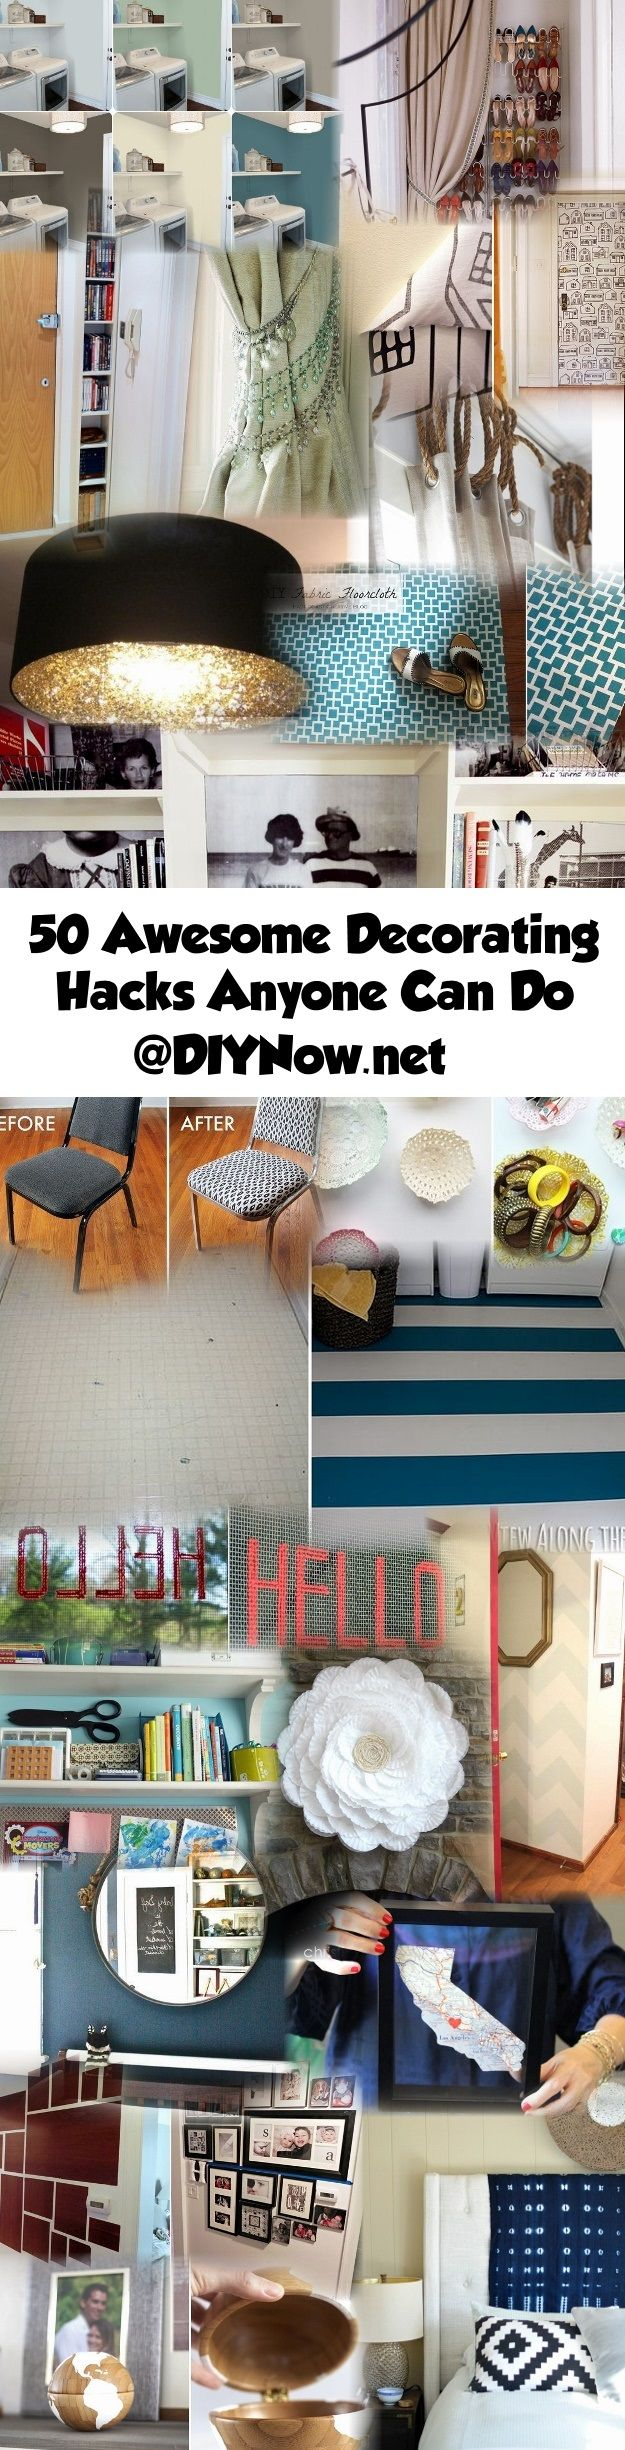 50 Awesome Decorating Hacks Anyone Can Do